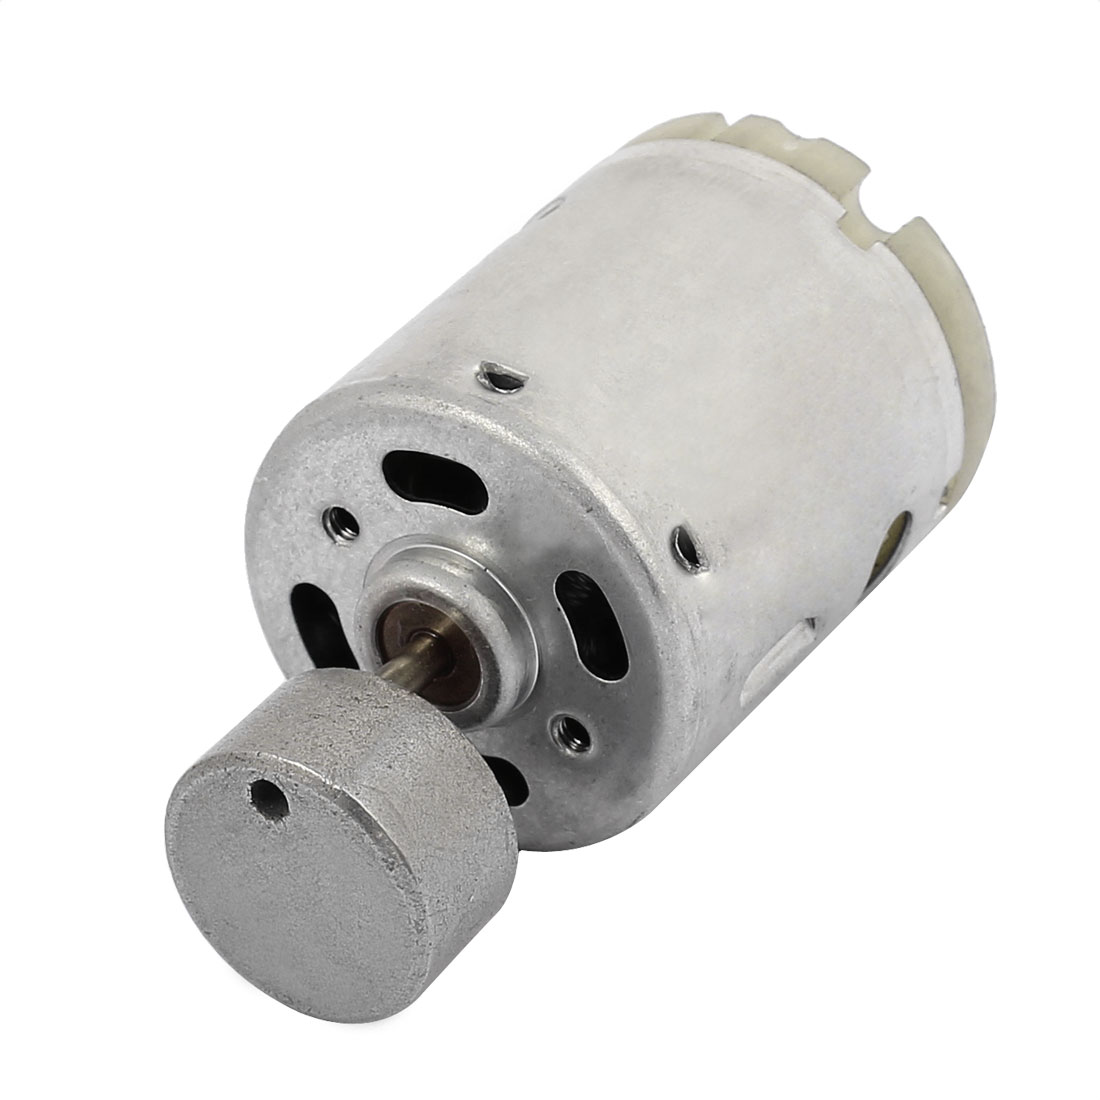 DC 12-24V 8000RPM Large Torque Vibration Micro DC Electric Motor for Electric Toy